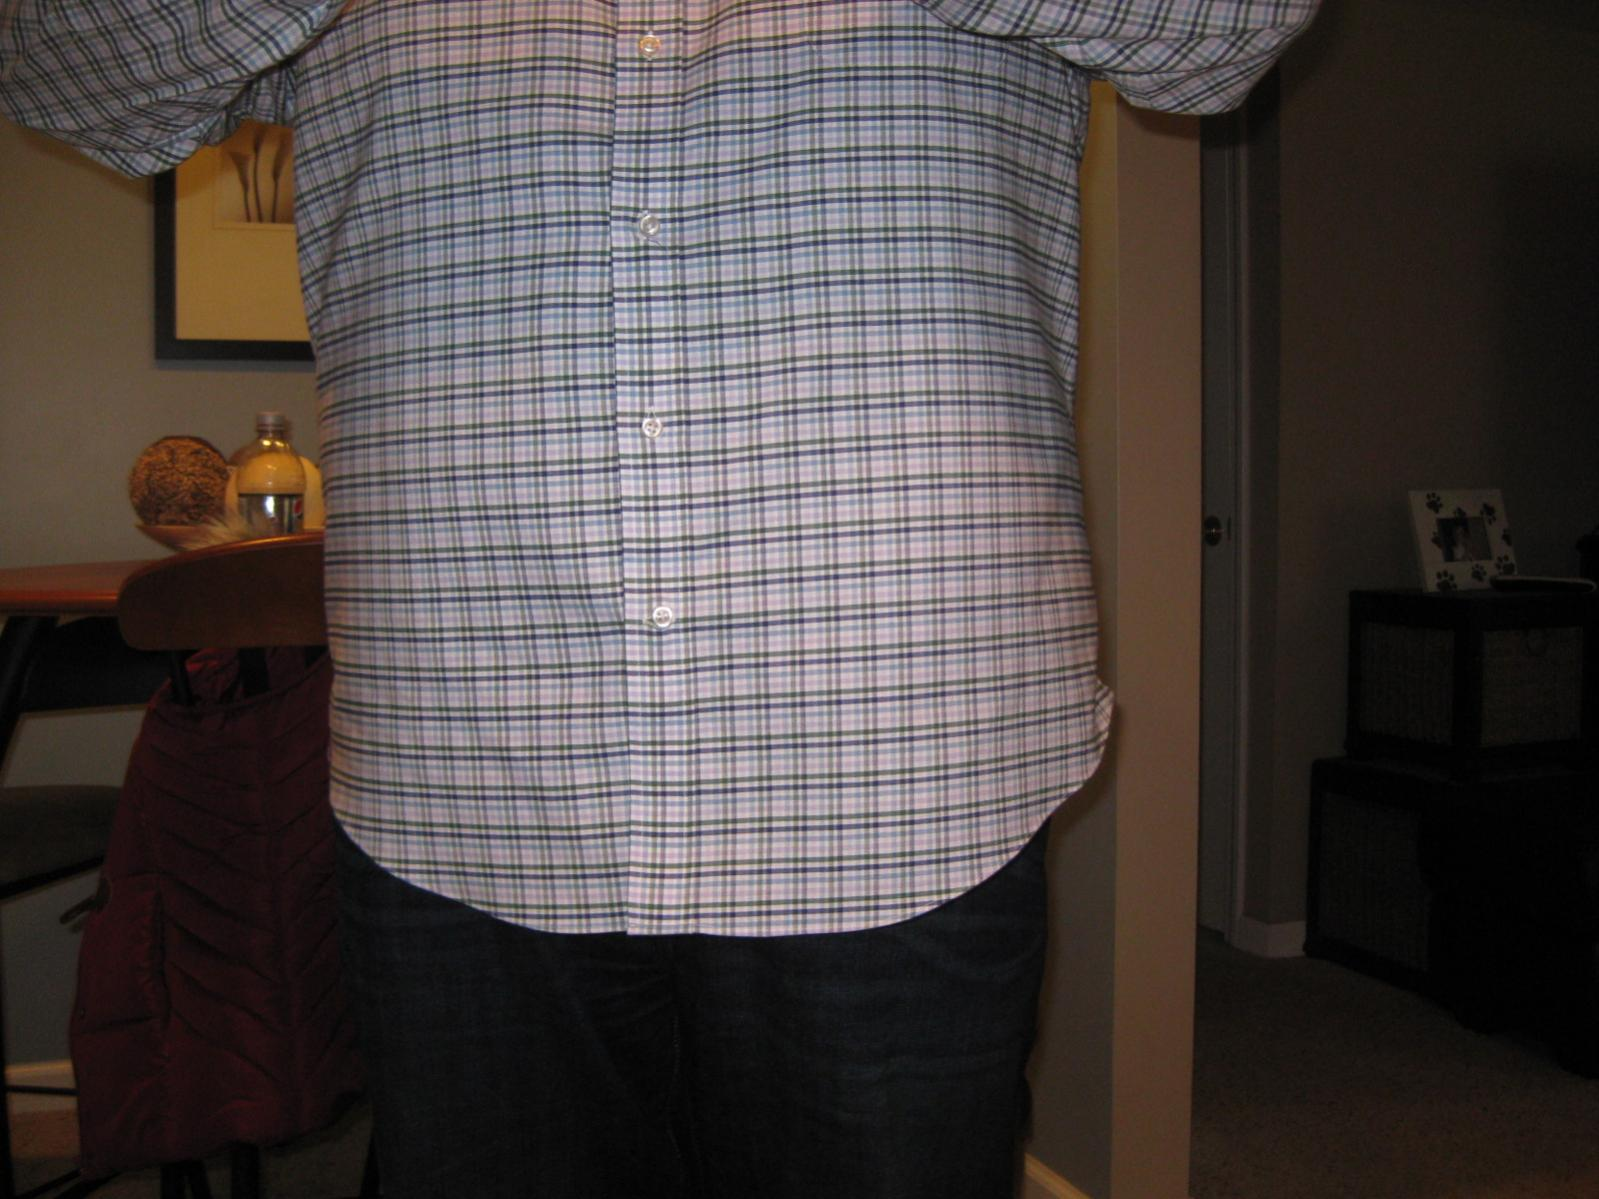 Let's See Your Pic's - How You Carry Concealed.-img_0581.jpg